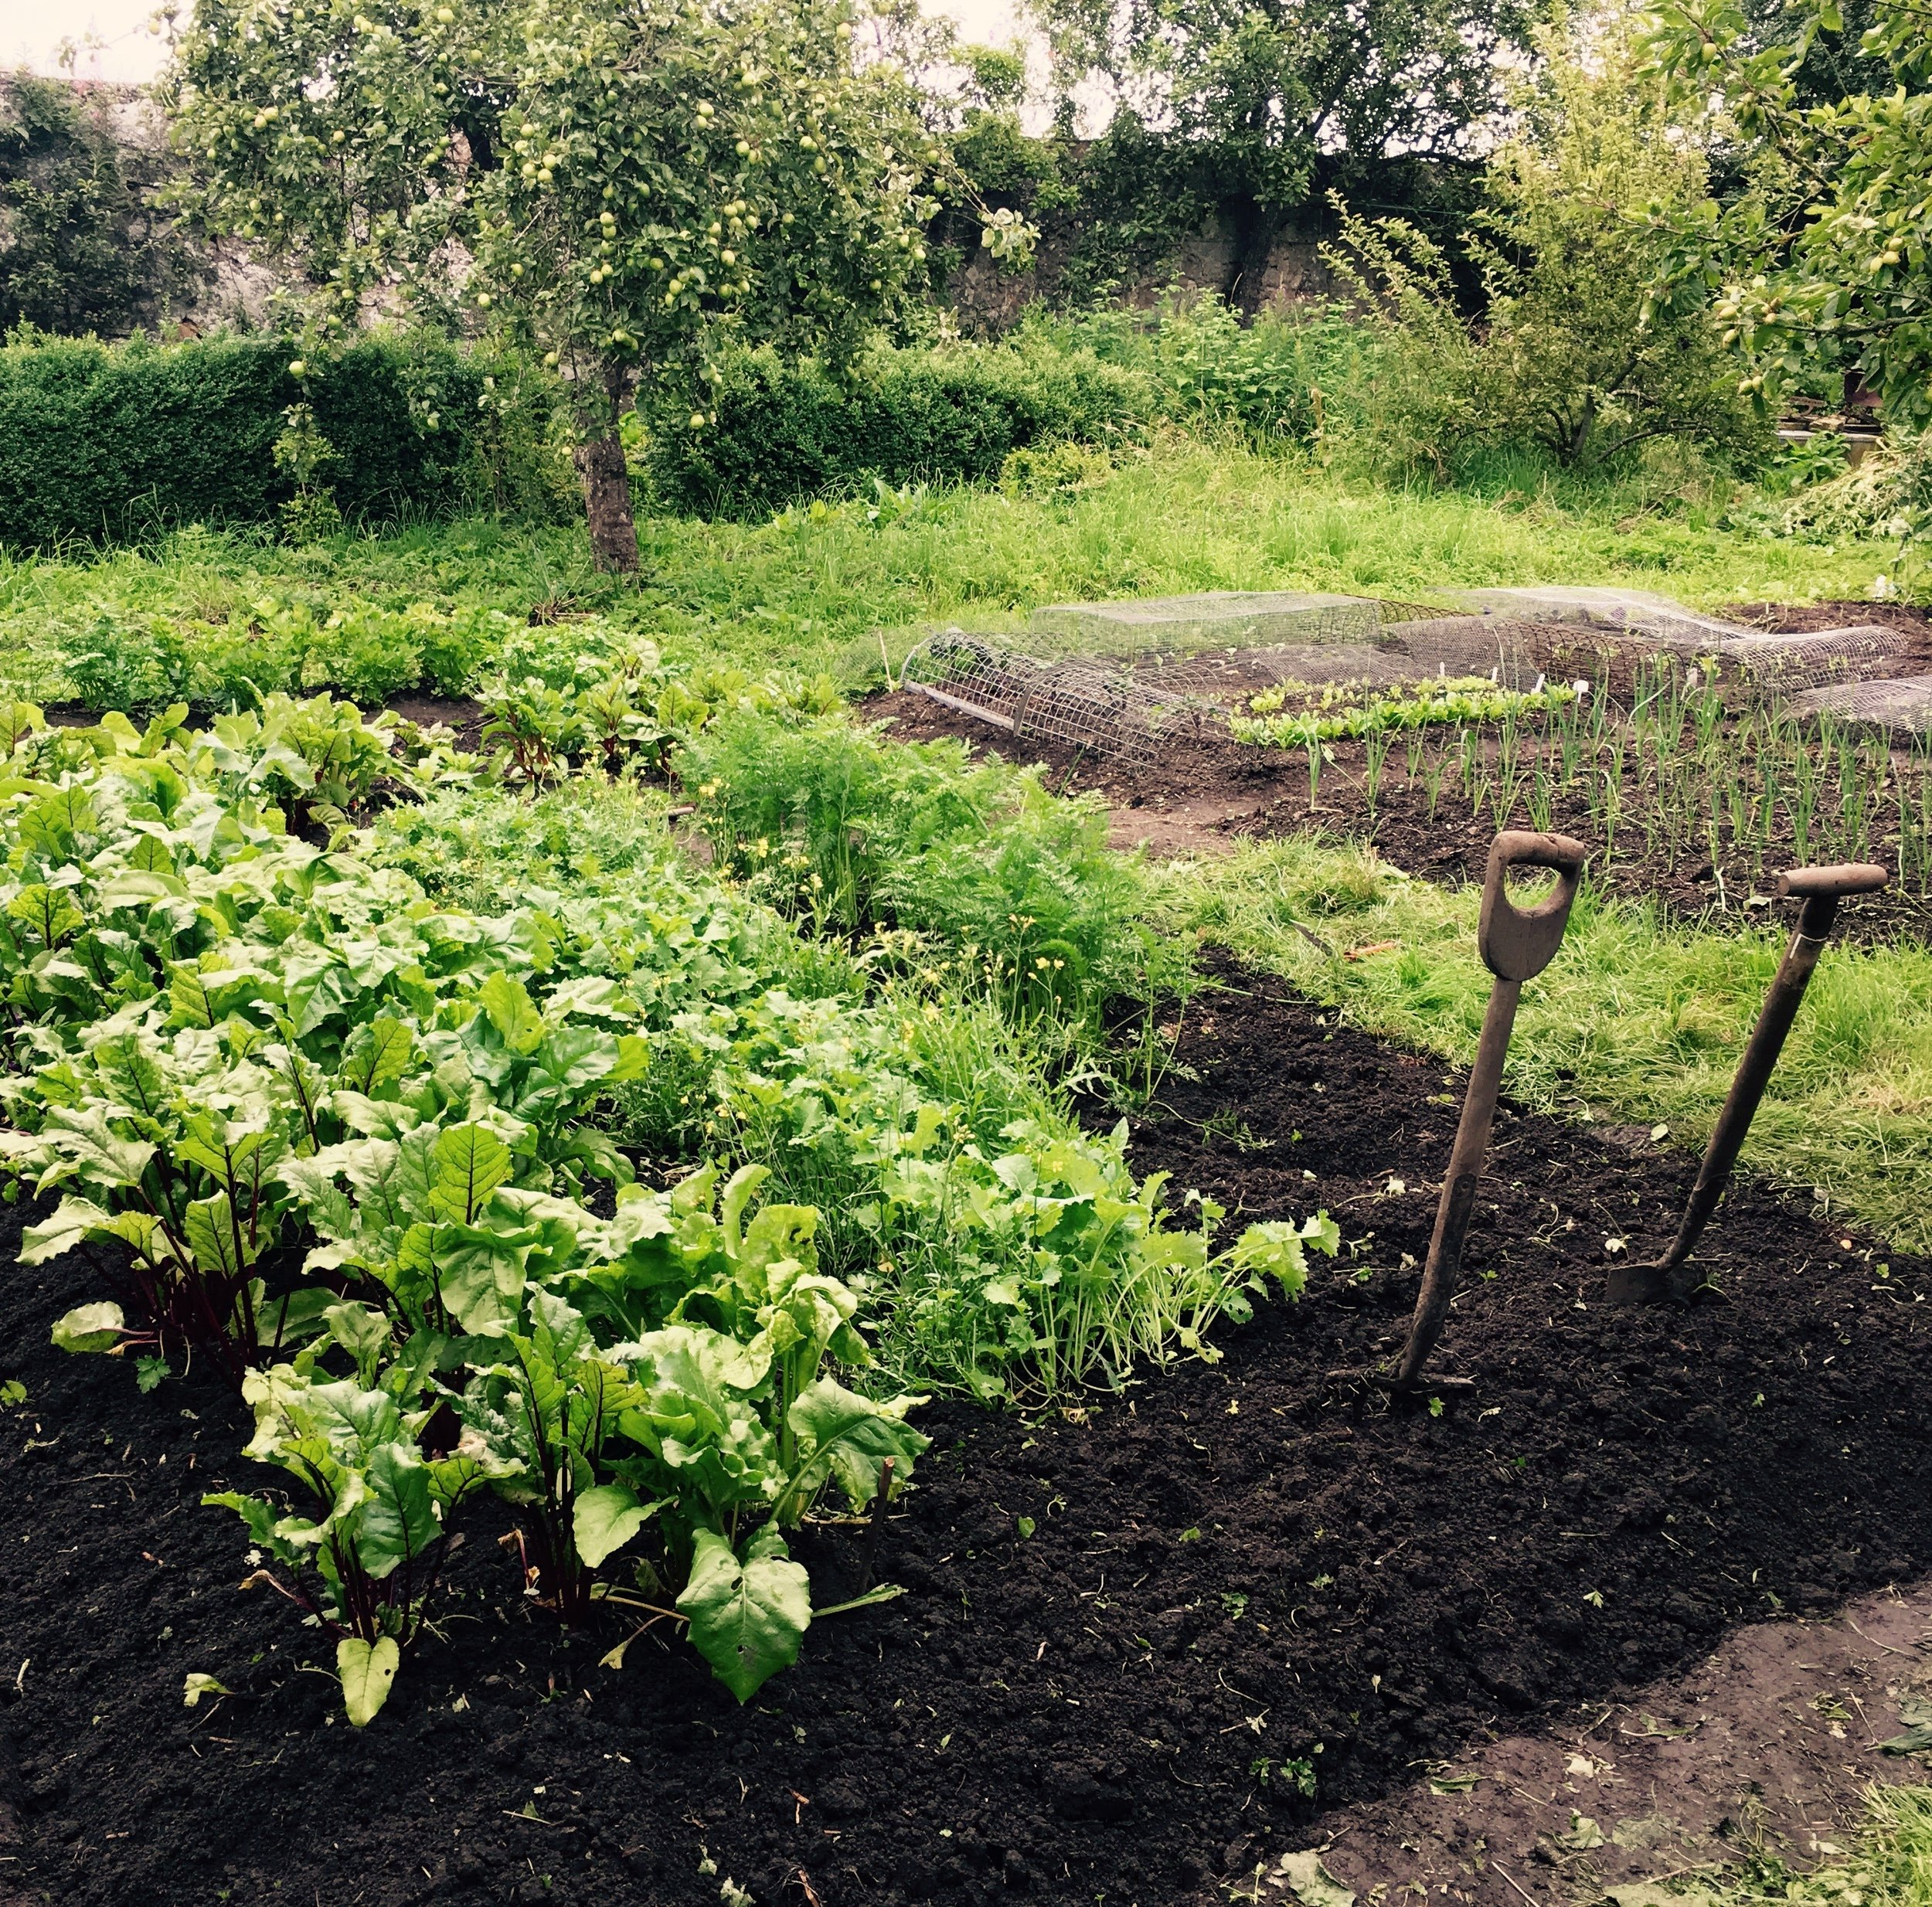 Food Fundamentals: Rethinking Health from the Ground Up - Sat. 21st Apr, 10-3pm